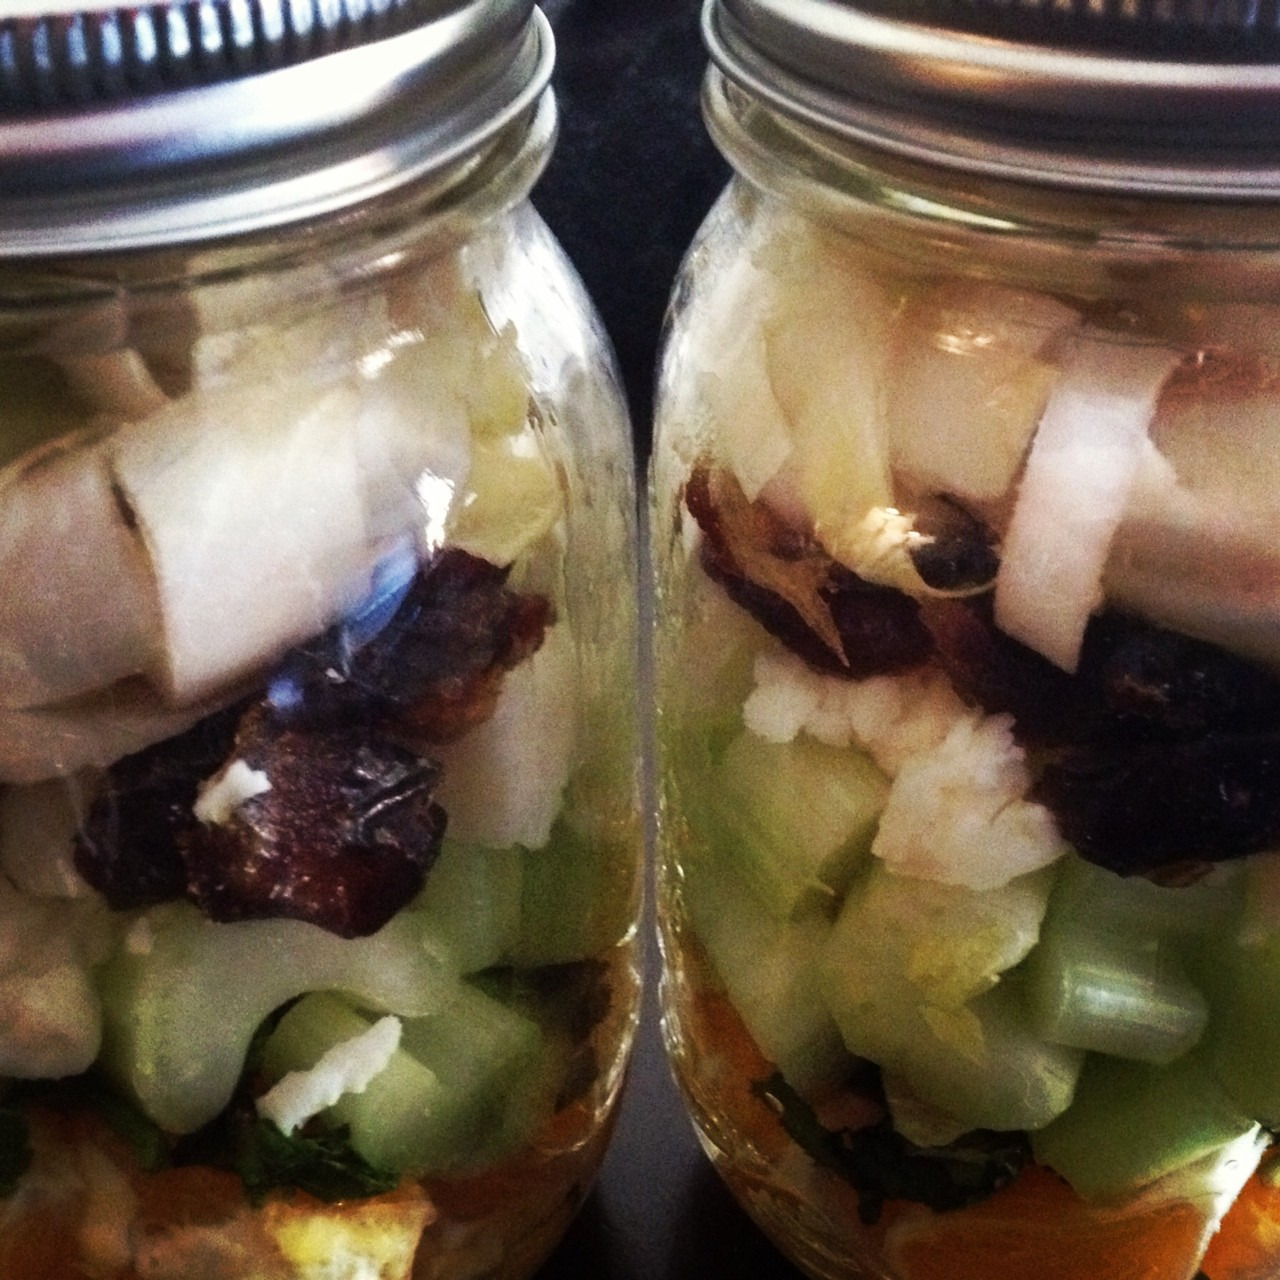 Salads-in-a-Jar | A bottle of France